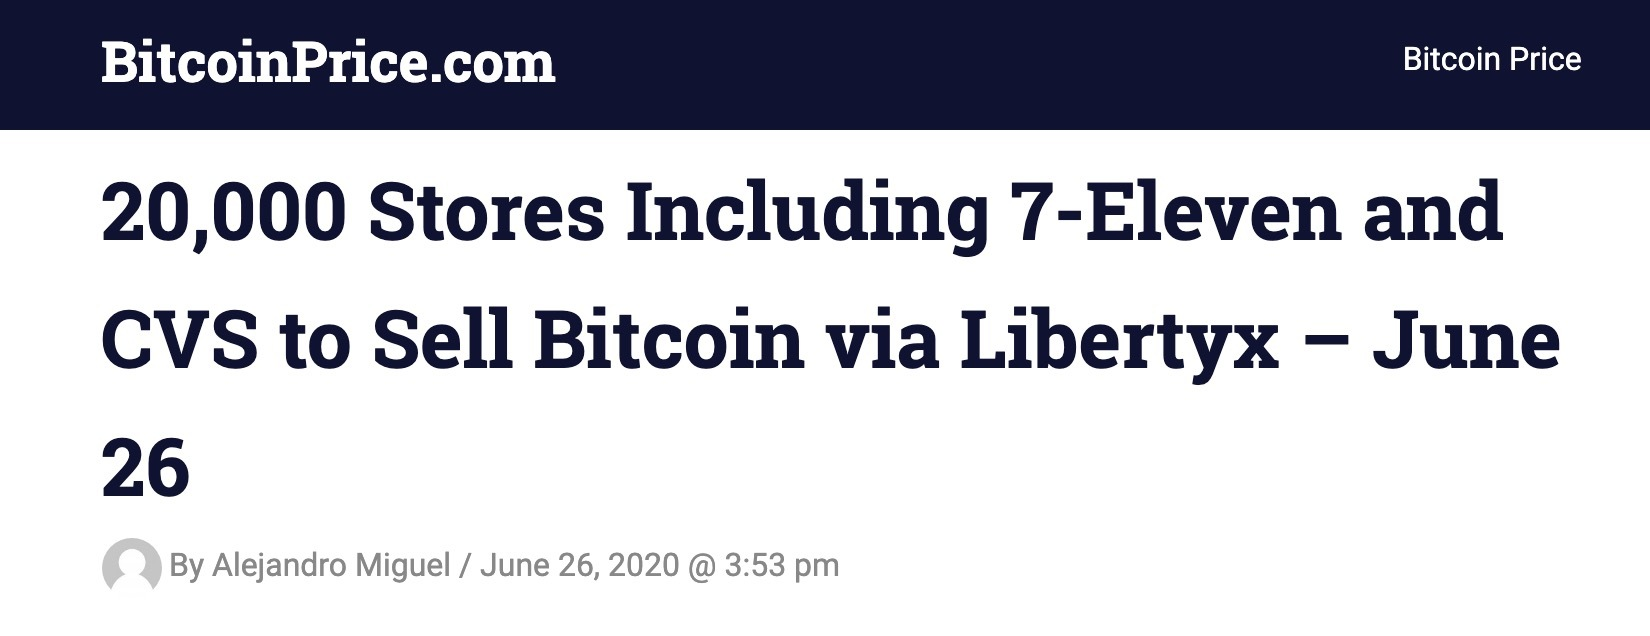 You are currently viewing Bitcoin Adoption; The Plan is Unfolding<br><span style='color:#00adee;font-size:.8em'>Bitcoin will soon be everywhere - and so will greater and greater control measures</span>